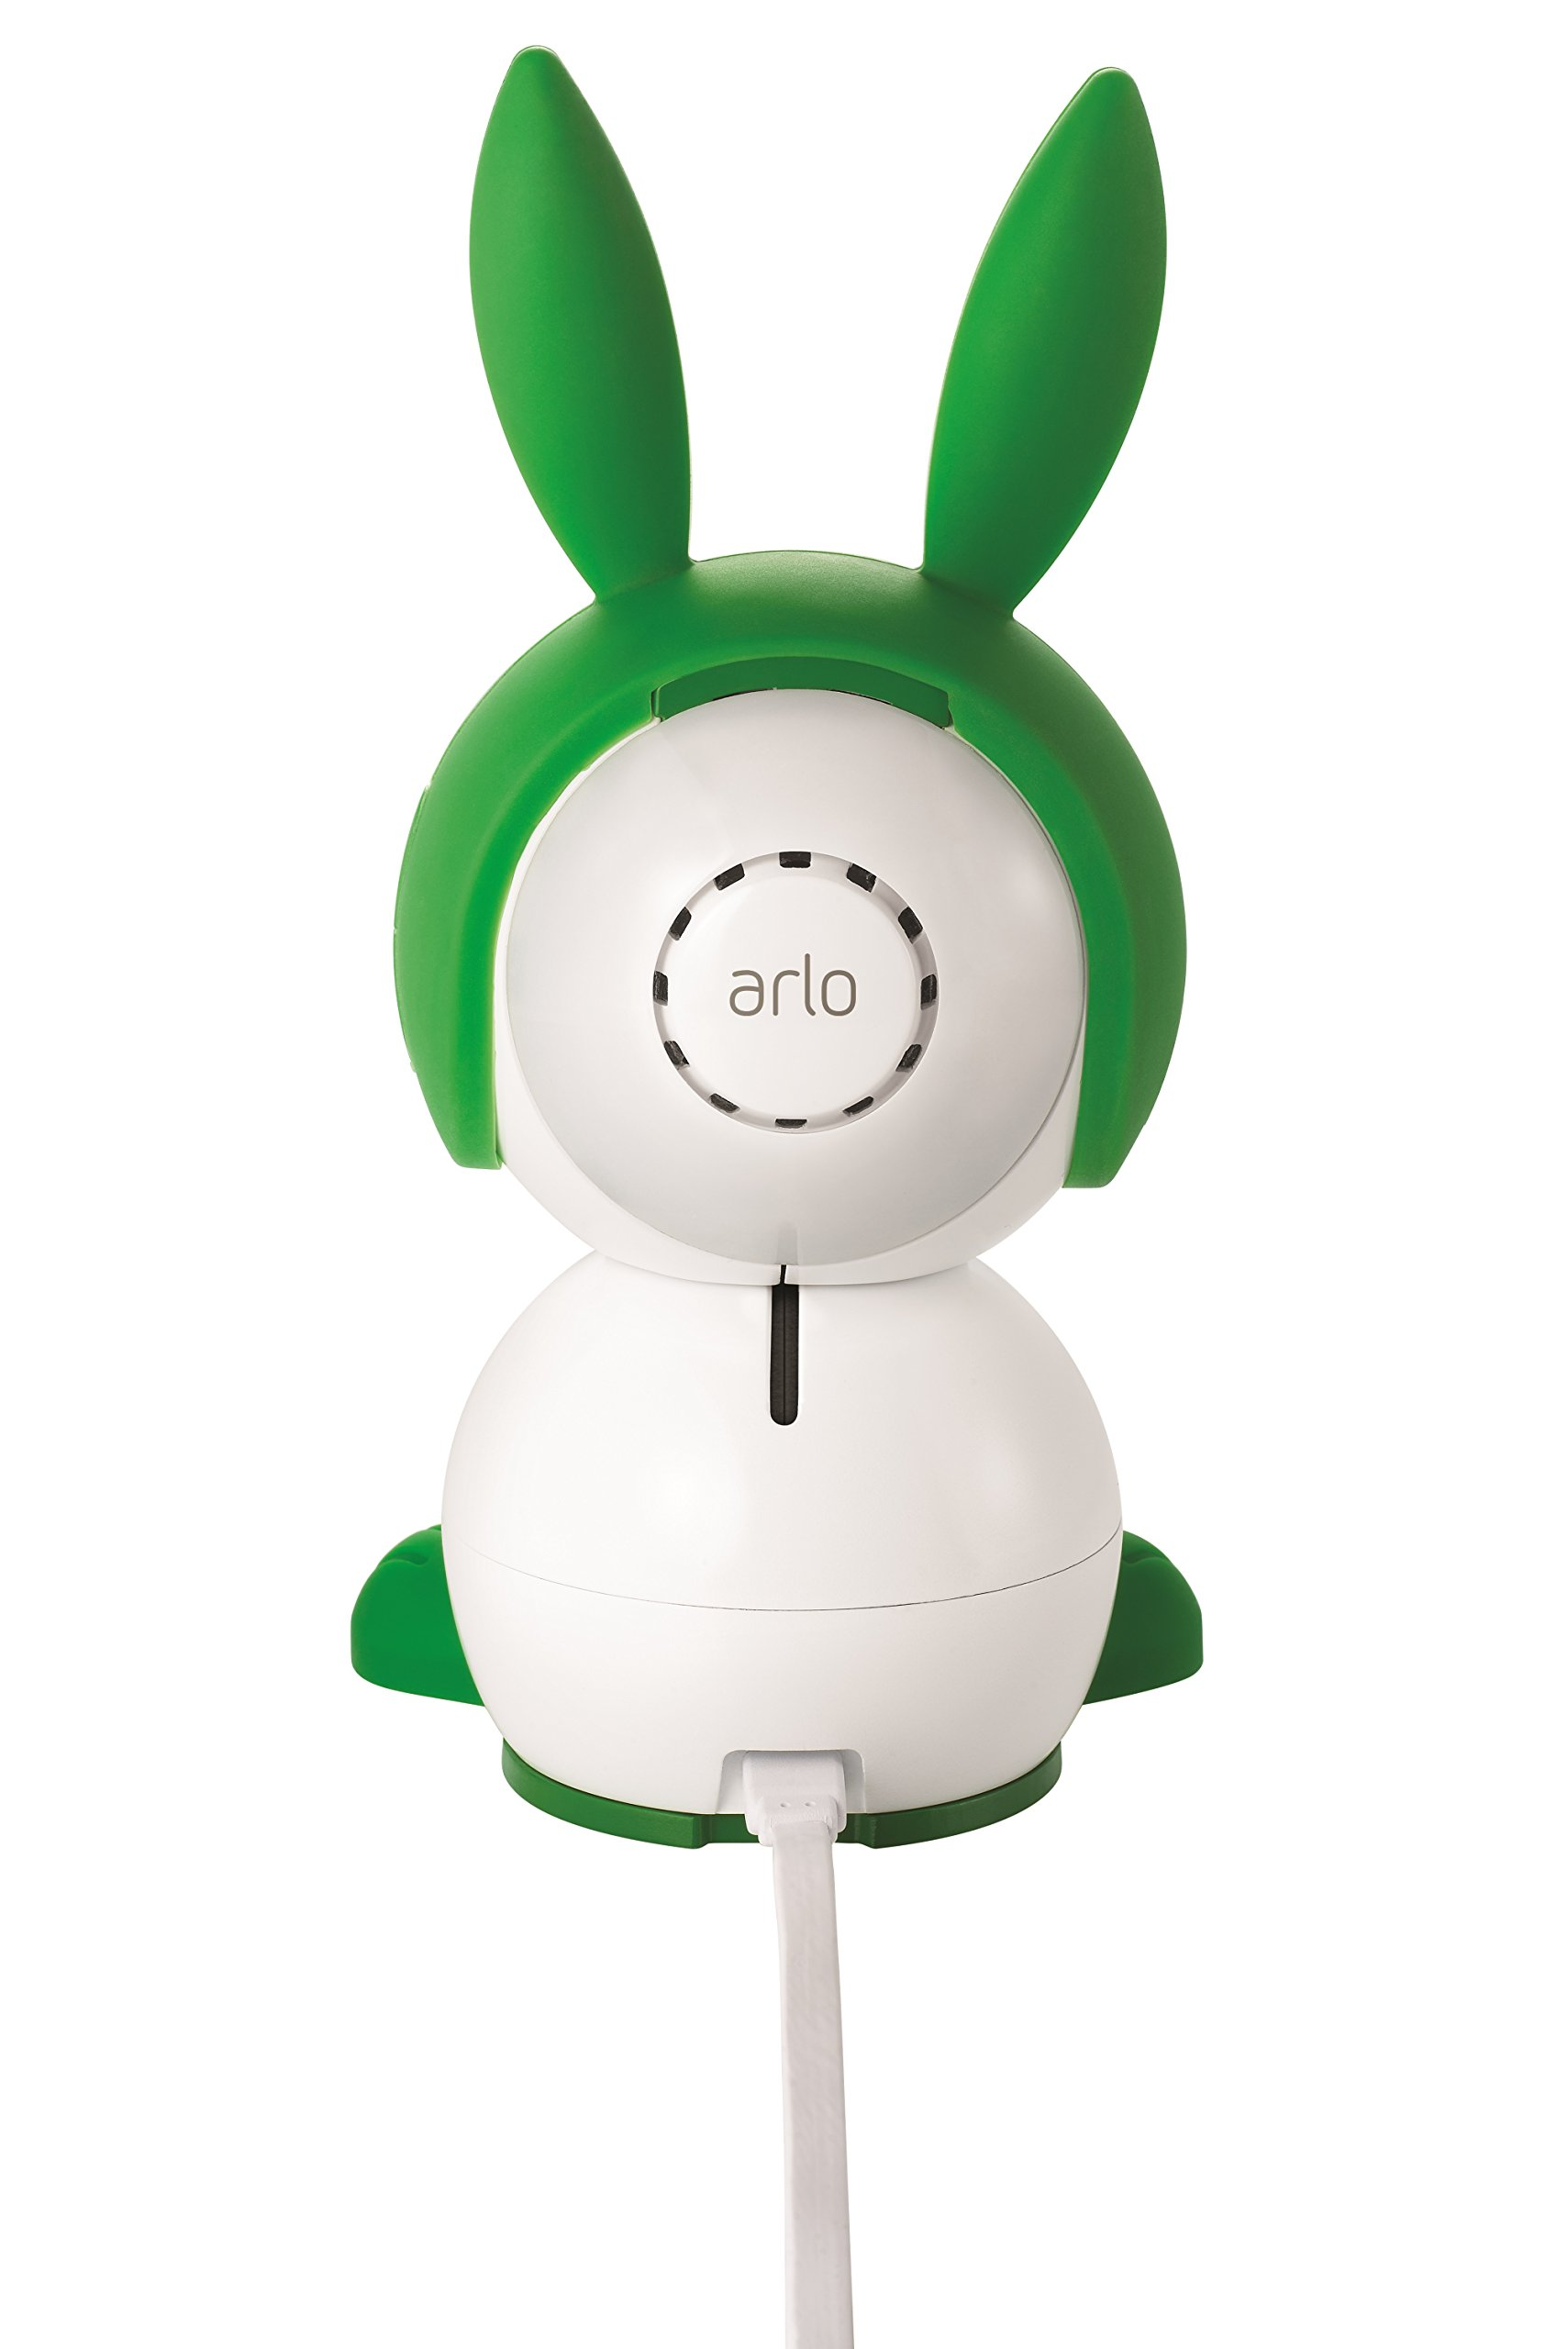 Arlo Baby Monitor Smart WIFI Baby Camera 1080P HD with 2-Way Audio, Night Vision, Air Sensors, Lullaby Player, Night Light, Works with Amazon Alexa, HomeKit (ABC1000) Arlo 1080p HD quality: View live or recorded videos in detail and rich colour; go untethered from a power source for up to 6 hours (up to 3 hours with night vision active) to go where your baby goes Two-way talk: Comfort and talk to your baby from anywhere, whether you're at the office or in the living room; built-in rechargeable battery Enhanced night vision: Near-invisible infrared LEDs lets you see your baby clearly, even in the dark(940nm LED: illuminates up to 15 feet) 6